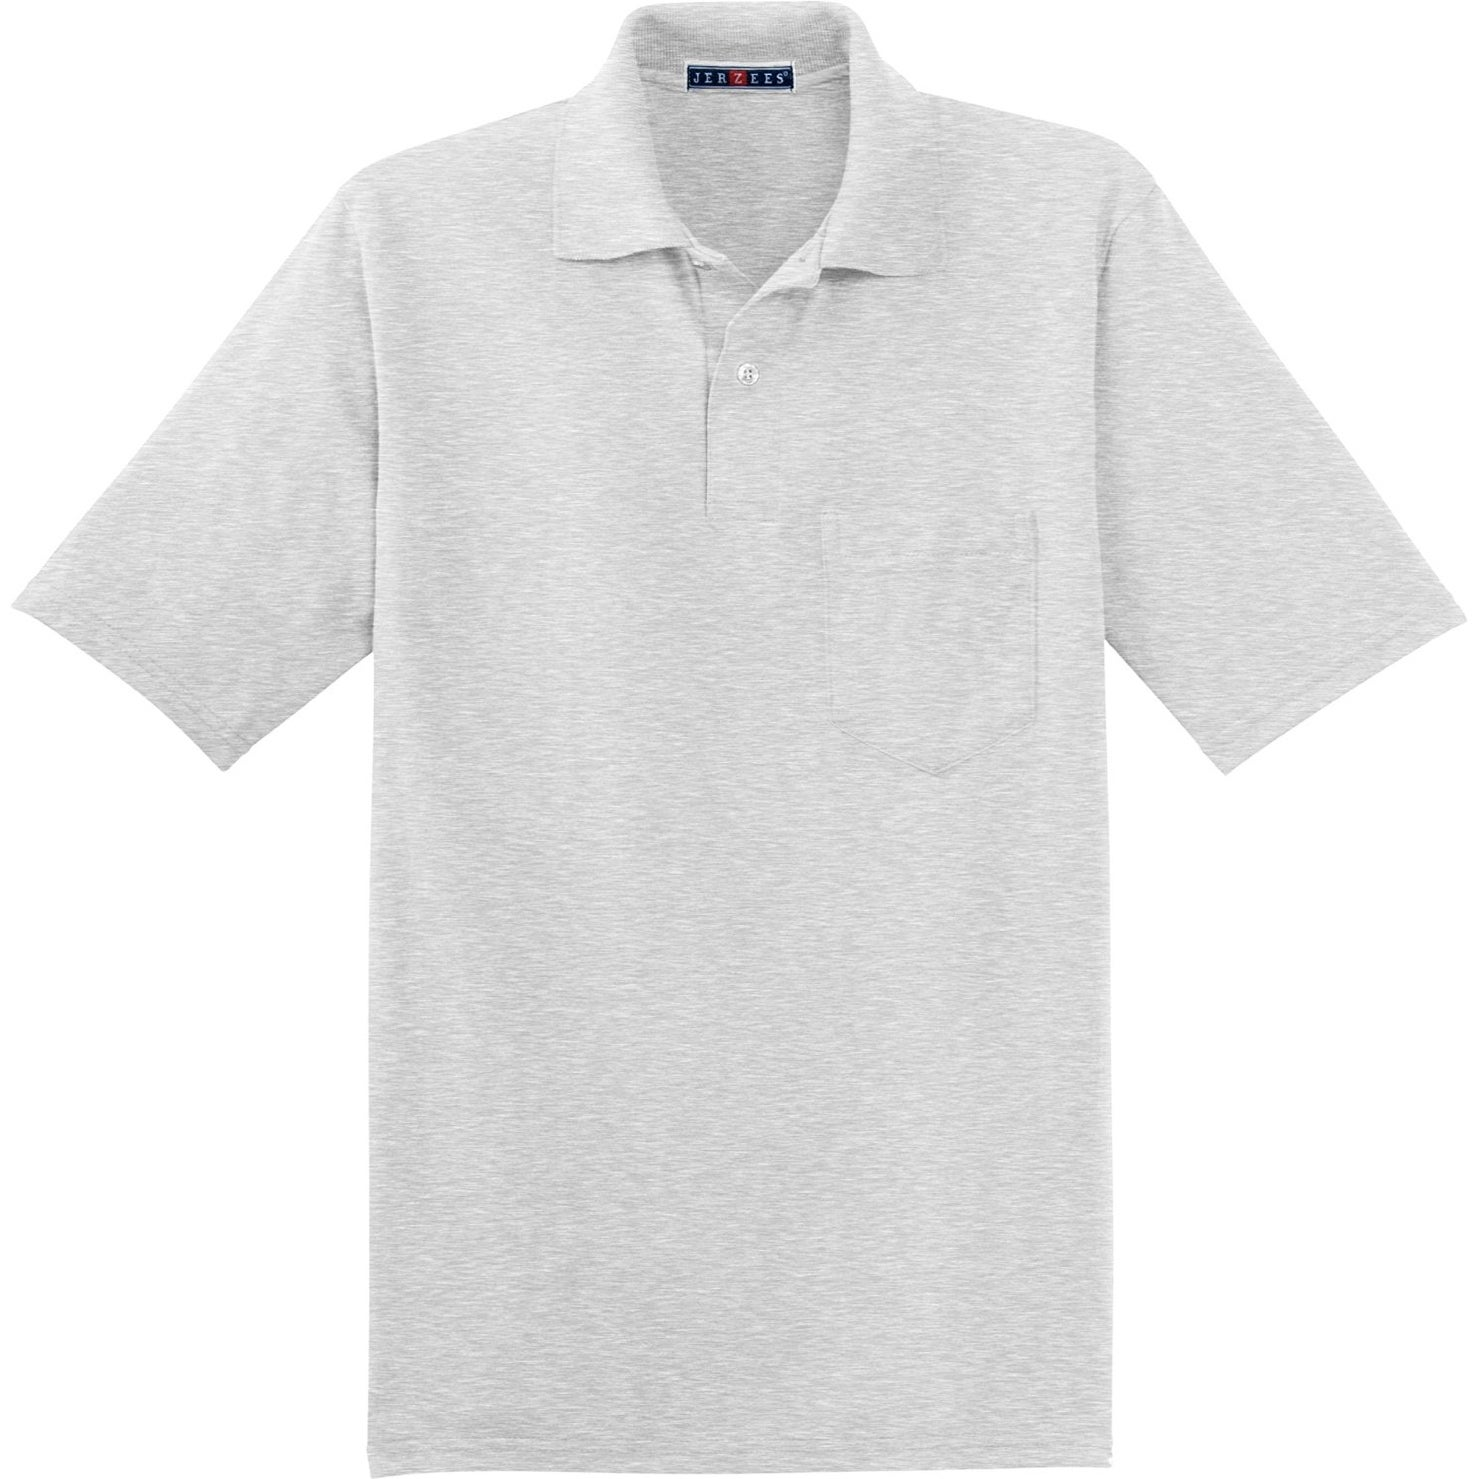 85f8e22ae70 Shop Jerzees 50/50 Pocket Sport Shirt with SpotShield, Oxford 2XL - Free  Shipping On Orders Over $45 - Overstock.com - 22809542